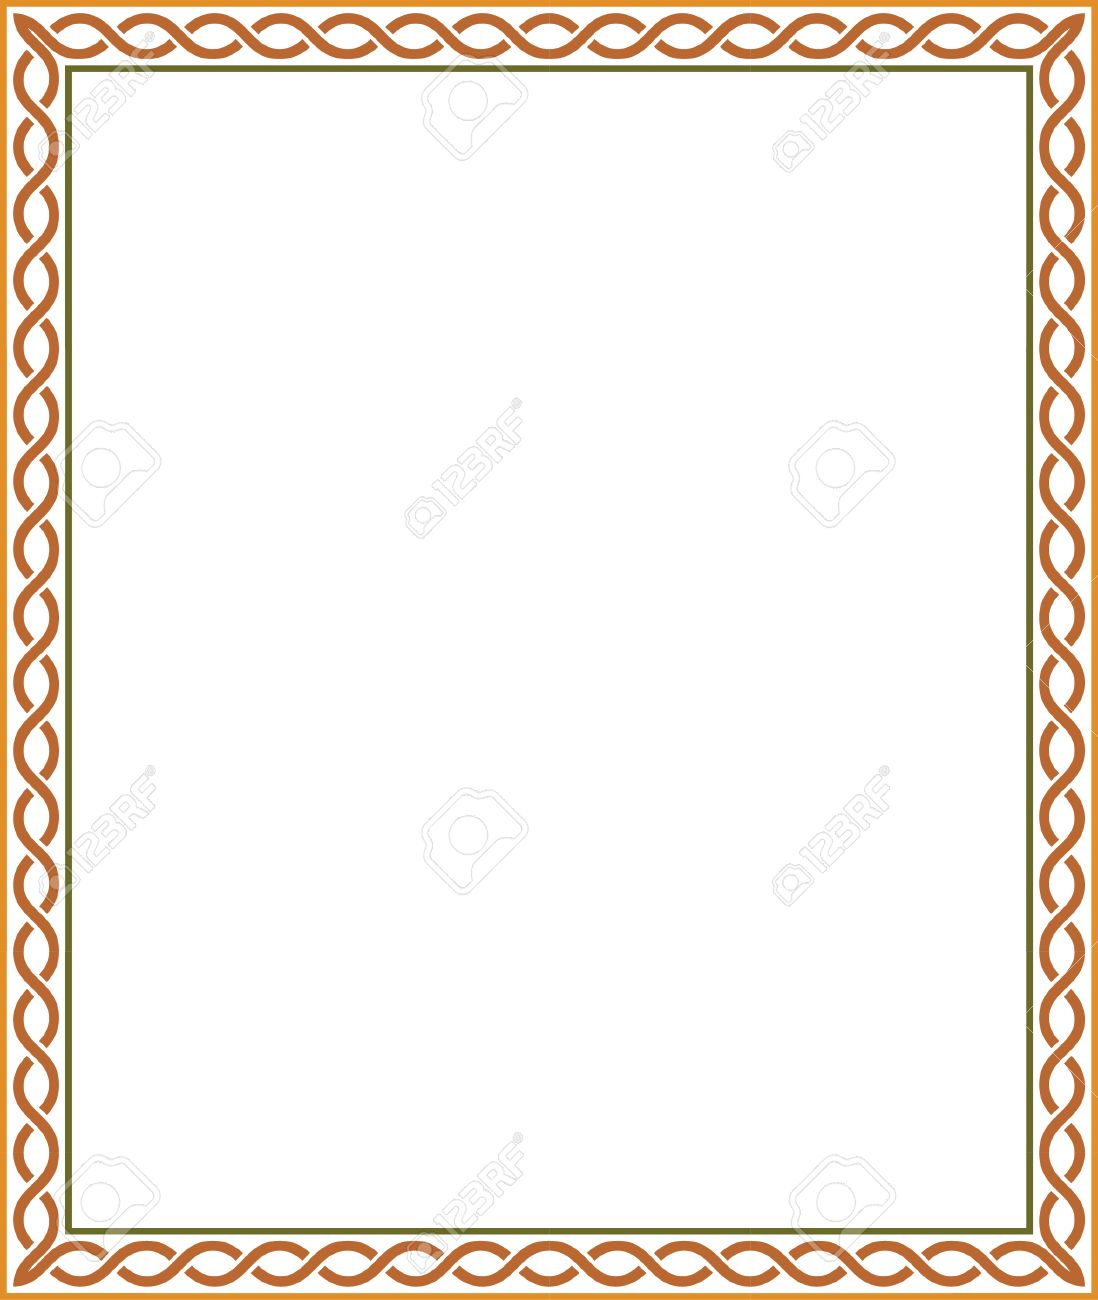 Simple Colorful Border Clip ArtColorfulPrintable Coloring Pages